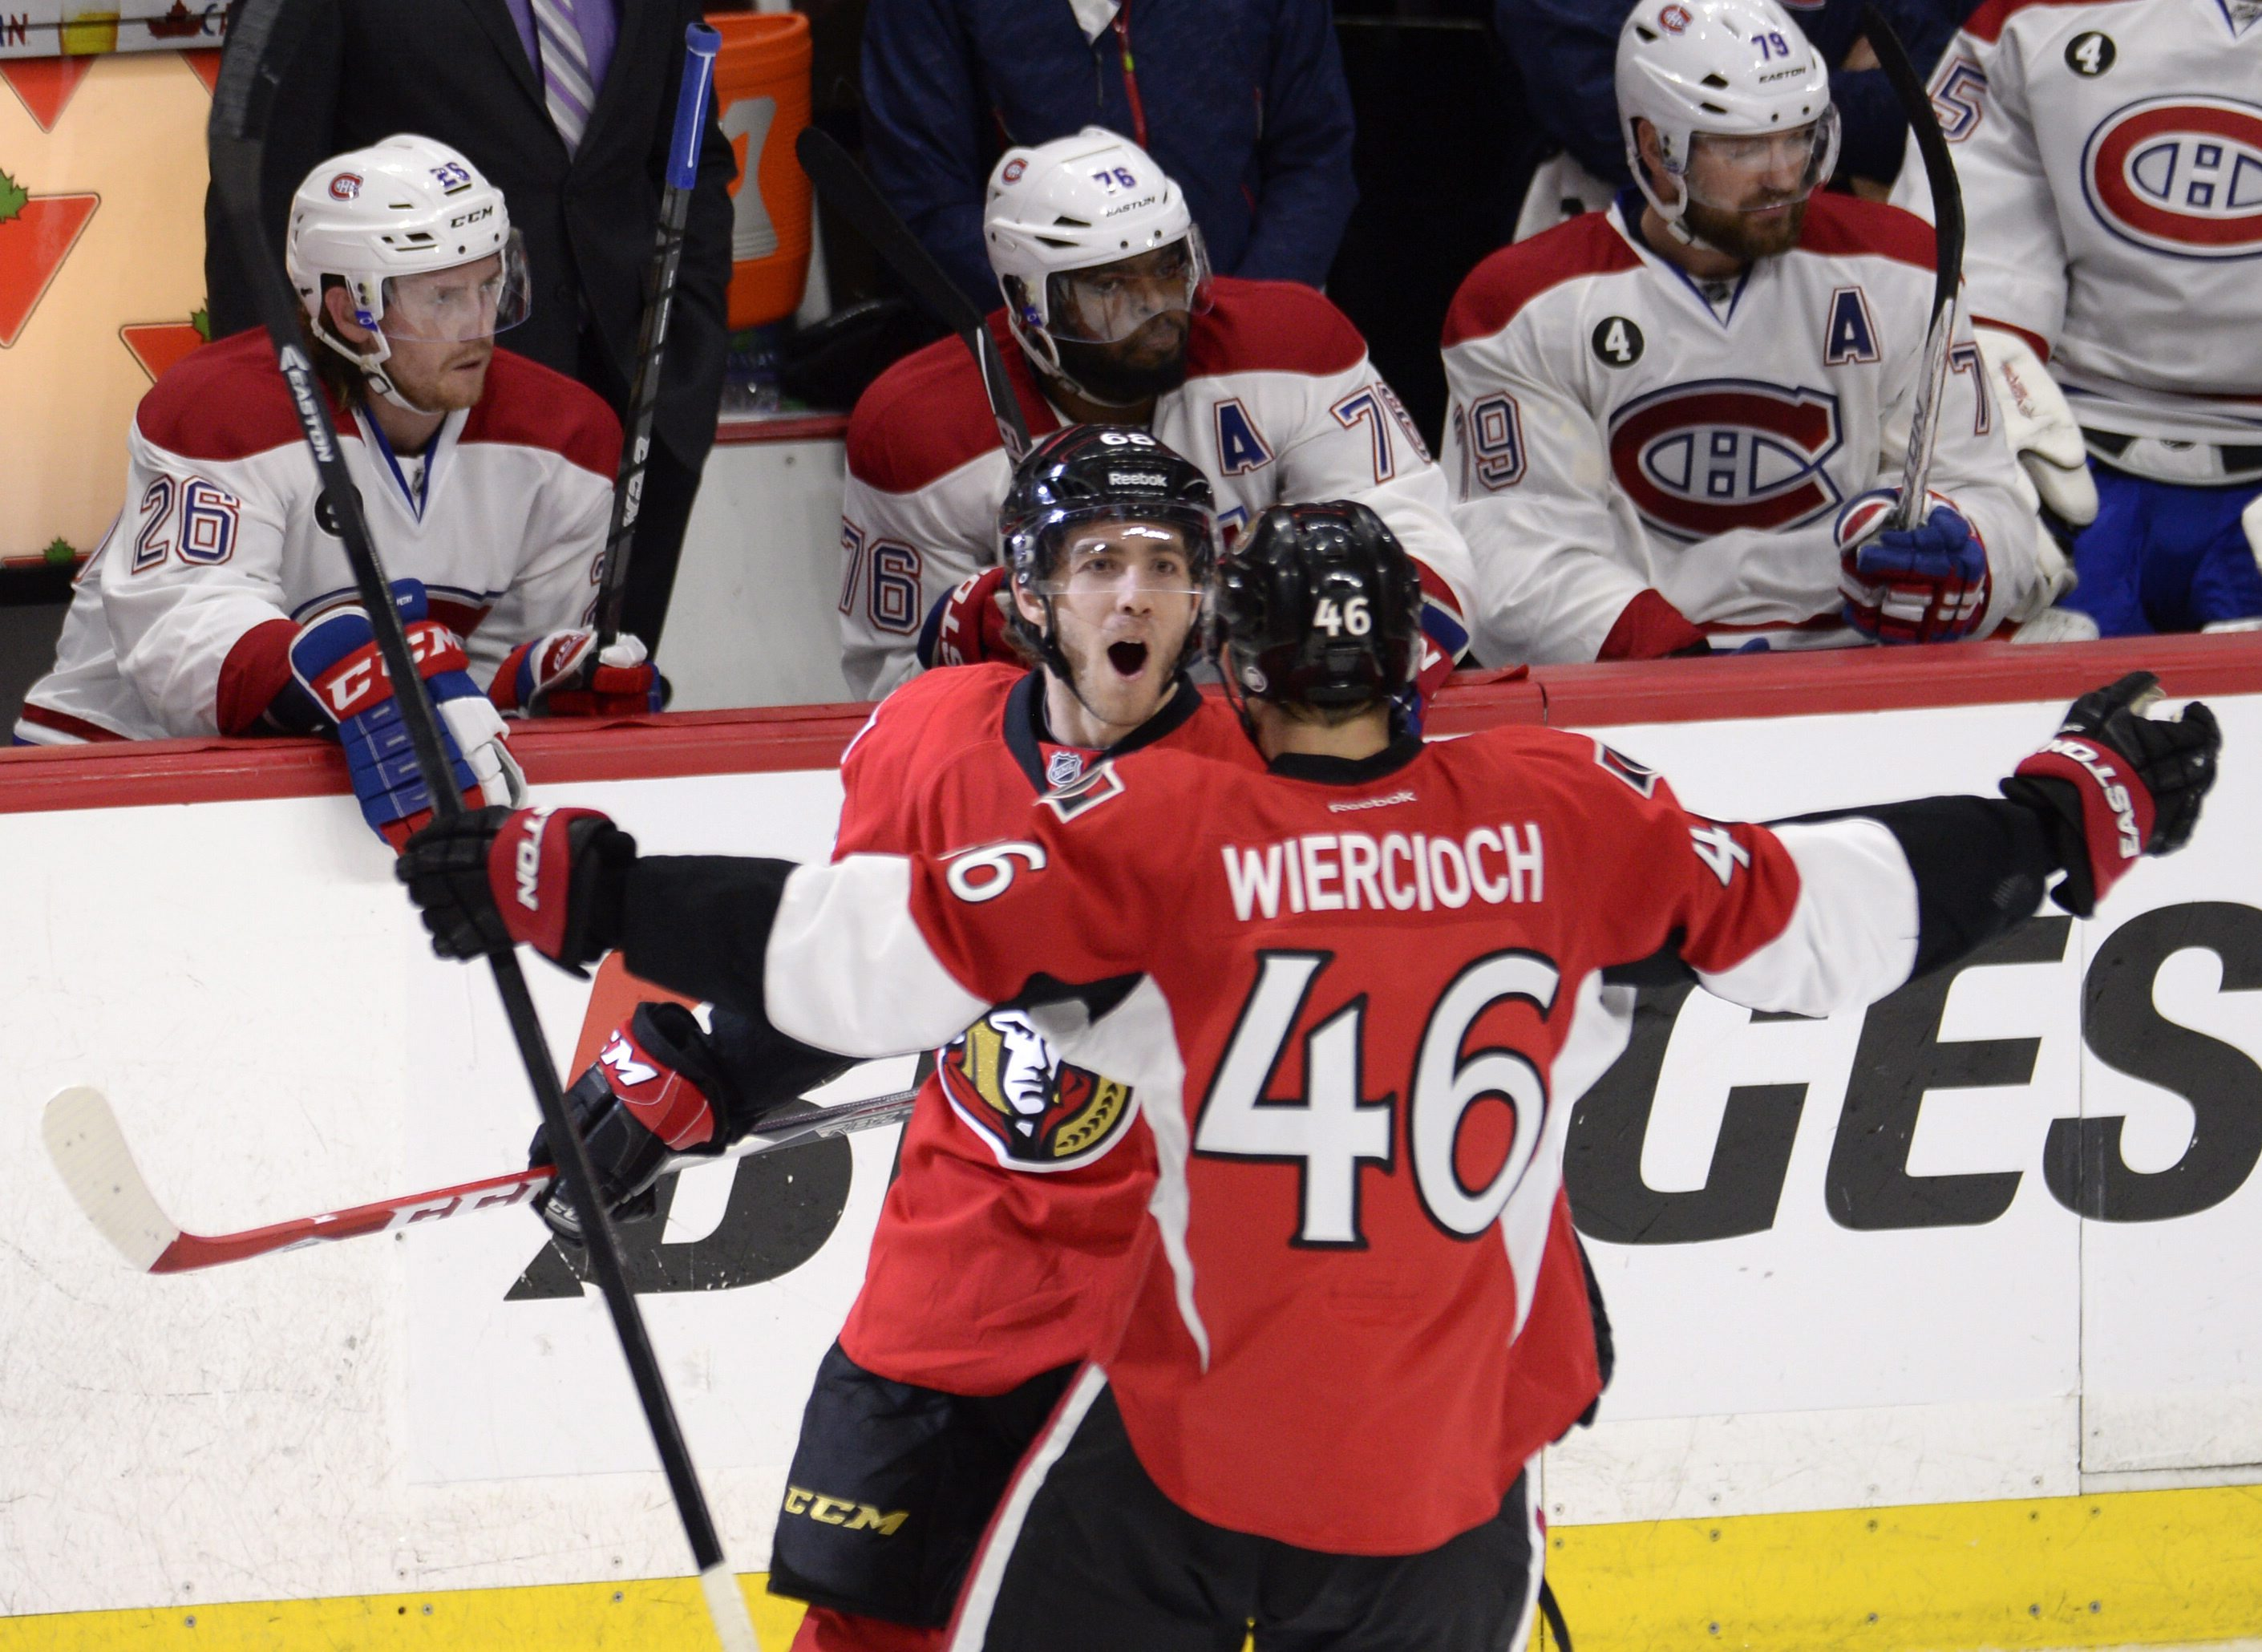 Ottawa Senators' Mike Hoffman (68) celebrates scoring on the Montreal Canadiens with teammate Patrick Wiercioch during the third period in Game 4 of an NHL hockey first-round playoff series, Wednesday, April 22, 2015 in Ottawa, Ontario. (Adrian Wyld/The C